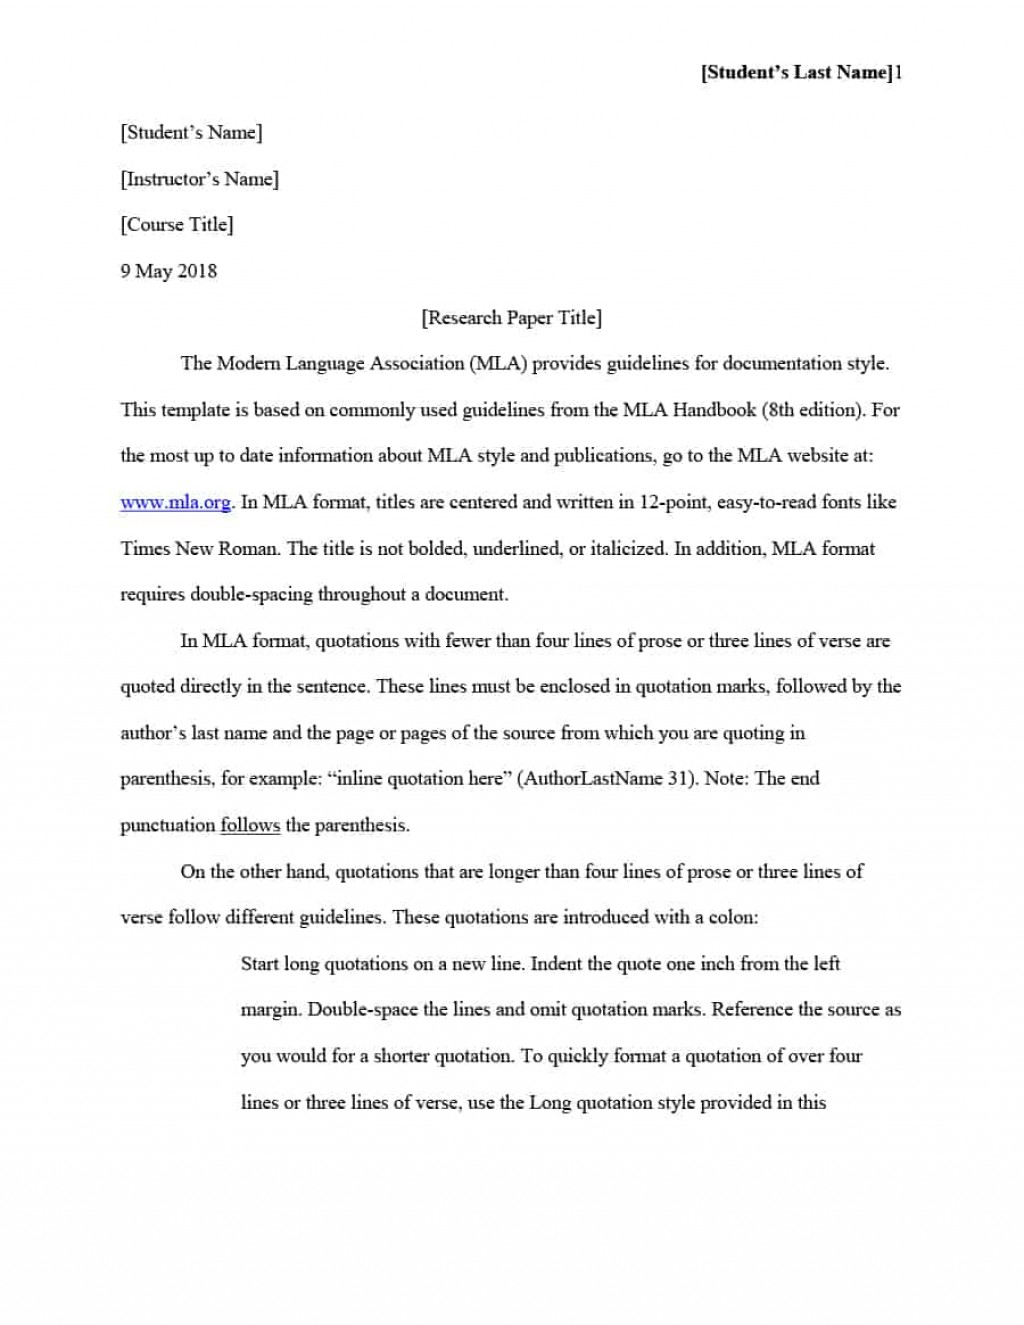 007 Mla Format Template Essay Example Phenomenal Formatted Title Page In Text Size Large